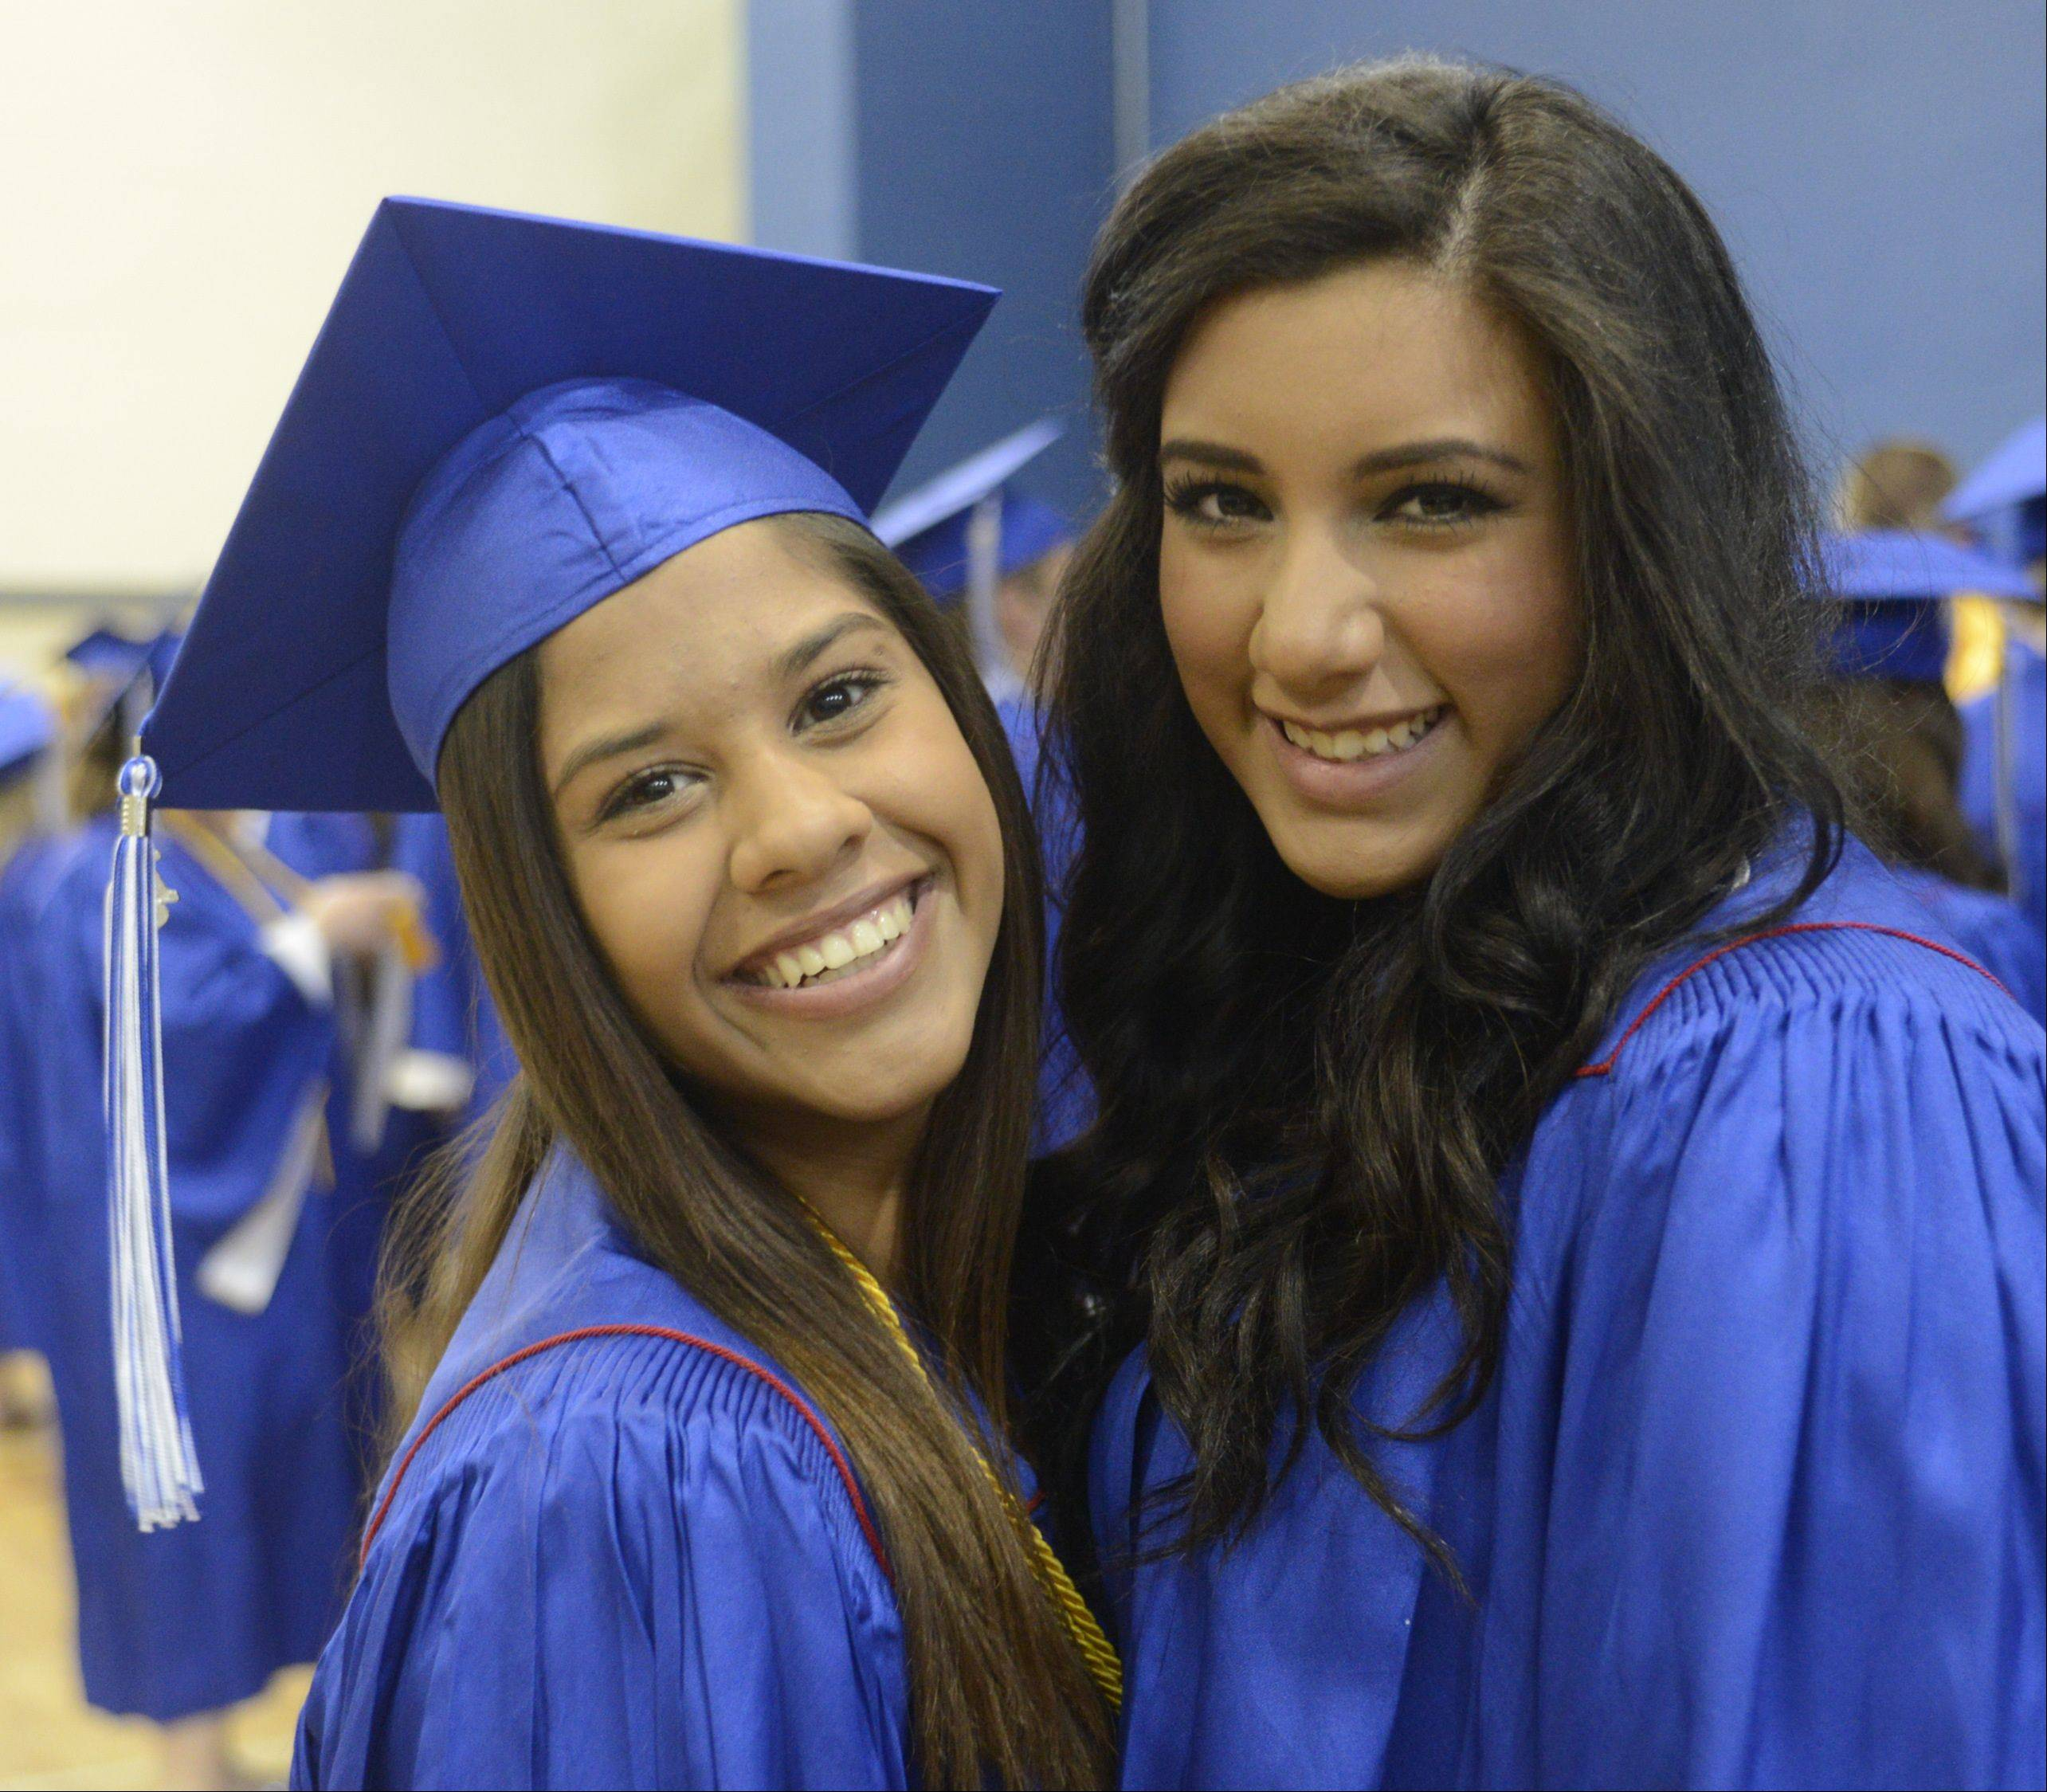 Images from the Lakes Community High School graduation on Sunday, May 19 in Lake Villa.